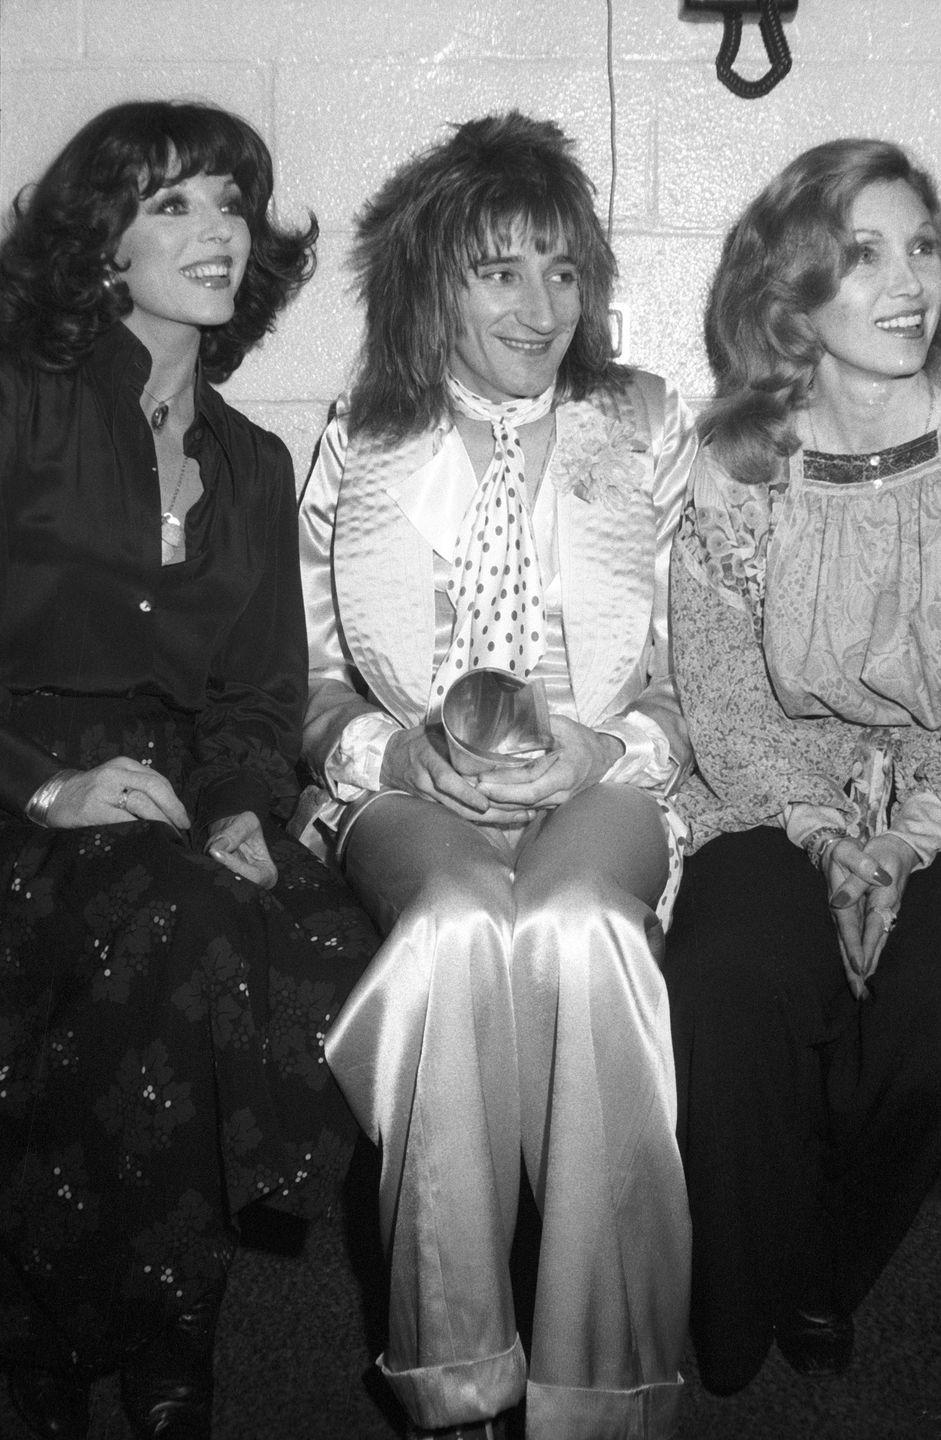 <p>Joan Collins and Alison Steele join rocker Rod Stewart backstage at Madison Square Garden after a Faces show in 1975. Stewart left the rock group later that year. </p>